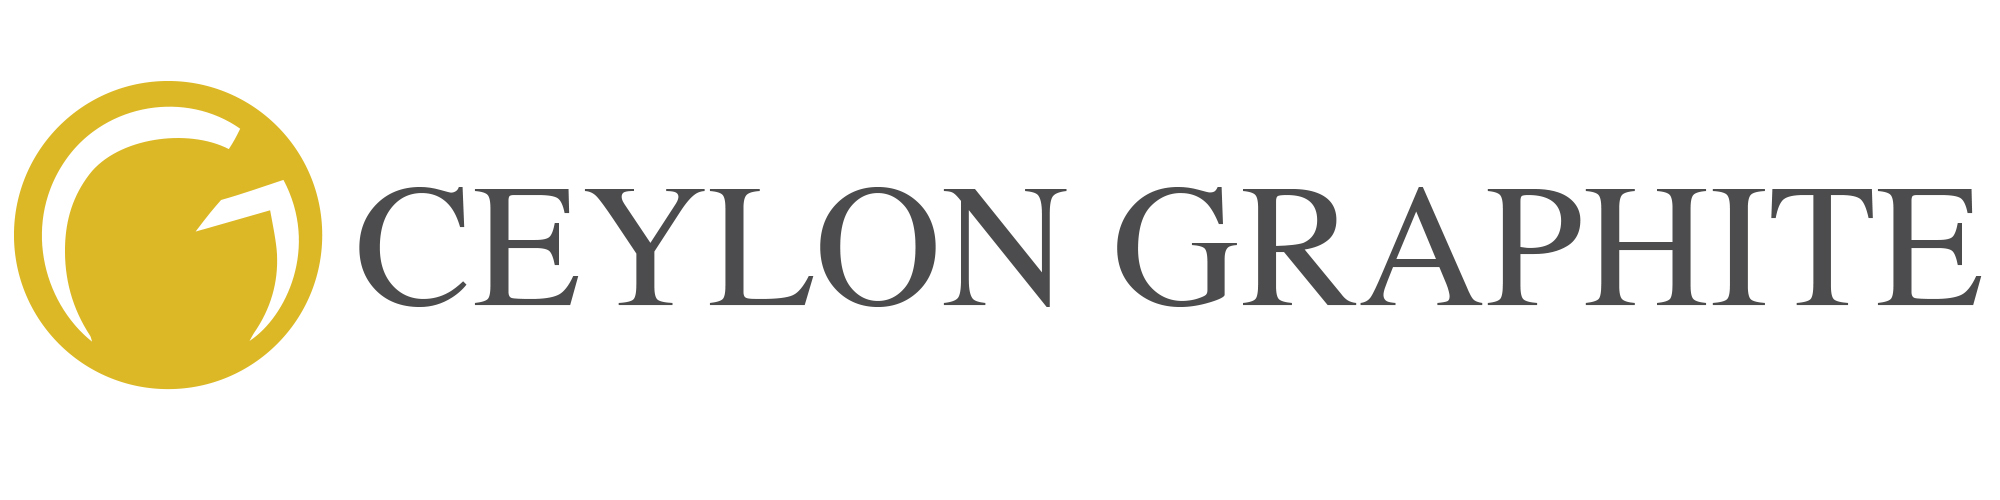 Ceylon Graphite Signs Global License MOU for Specialized Graphite and Graphene Technologies